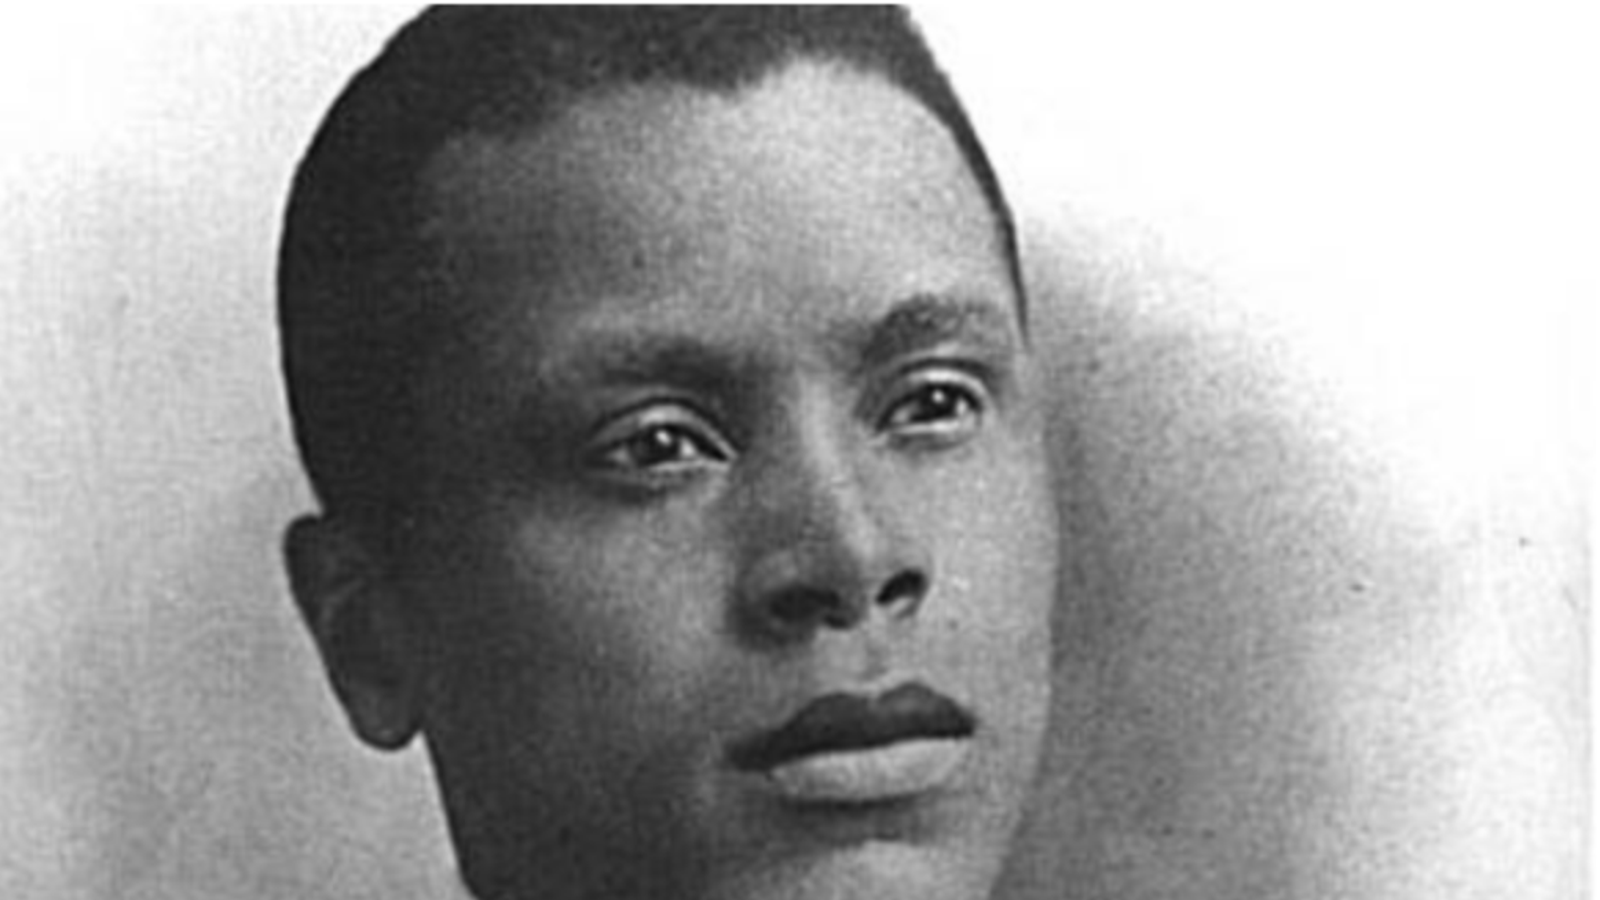 Paying Homage: Before Tyler Perry Studios, There Was Oscar Micheaux and Lincoln Motion Picture Company